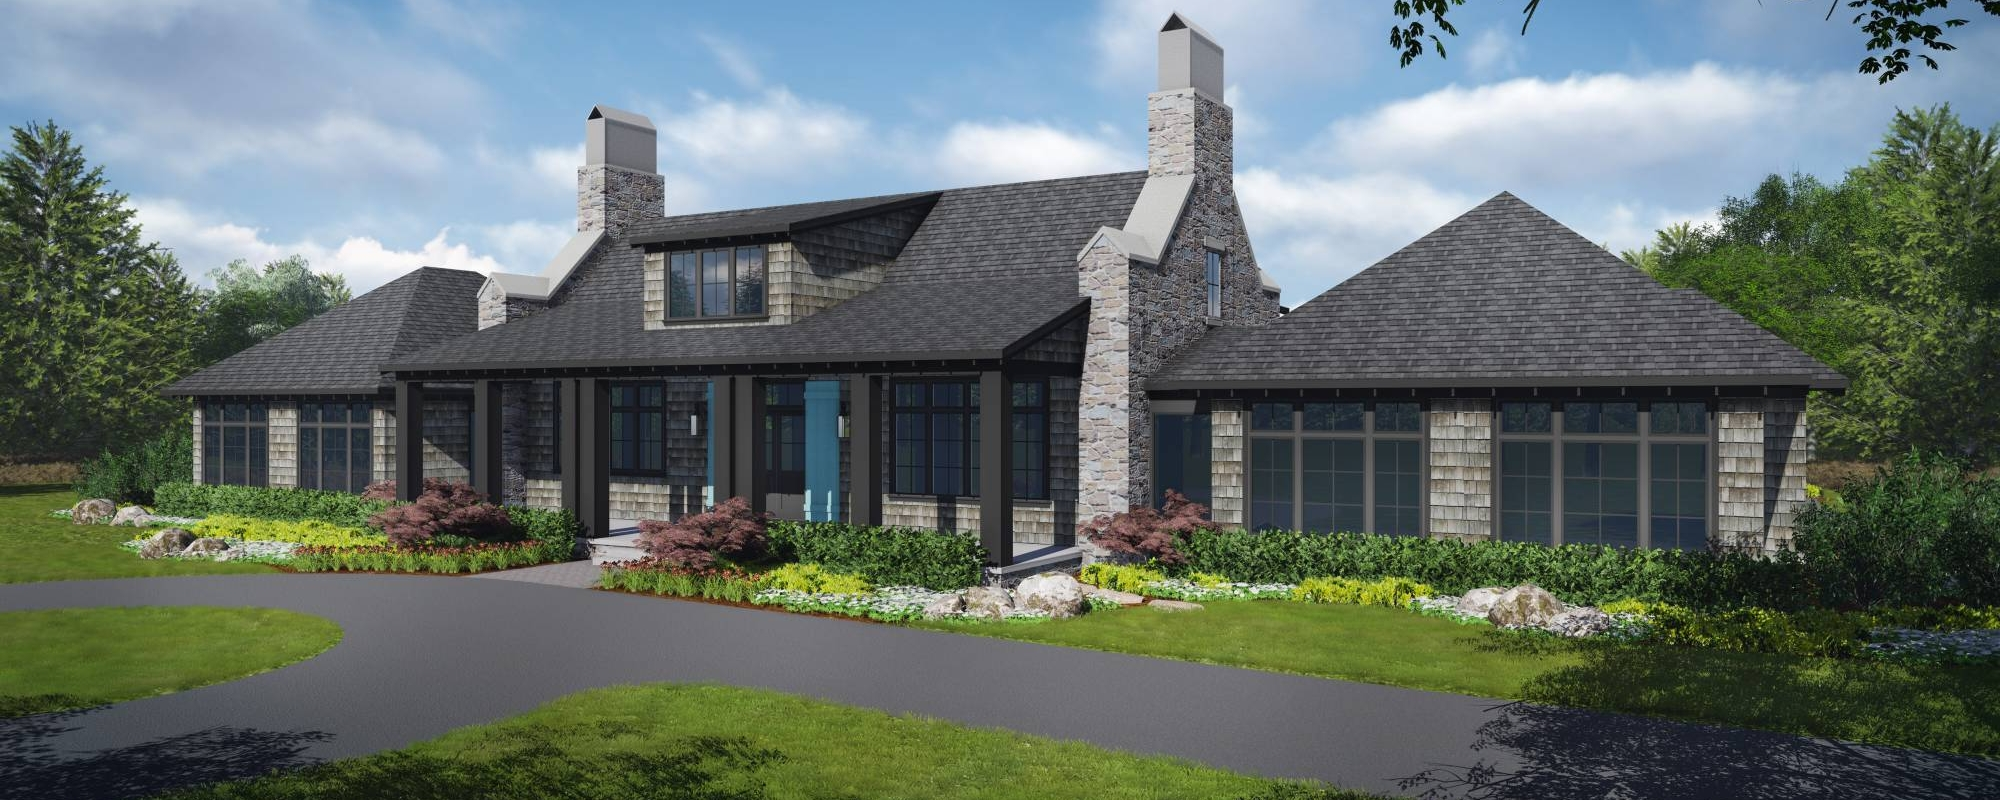 Glen Arbor French Country1